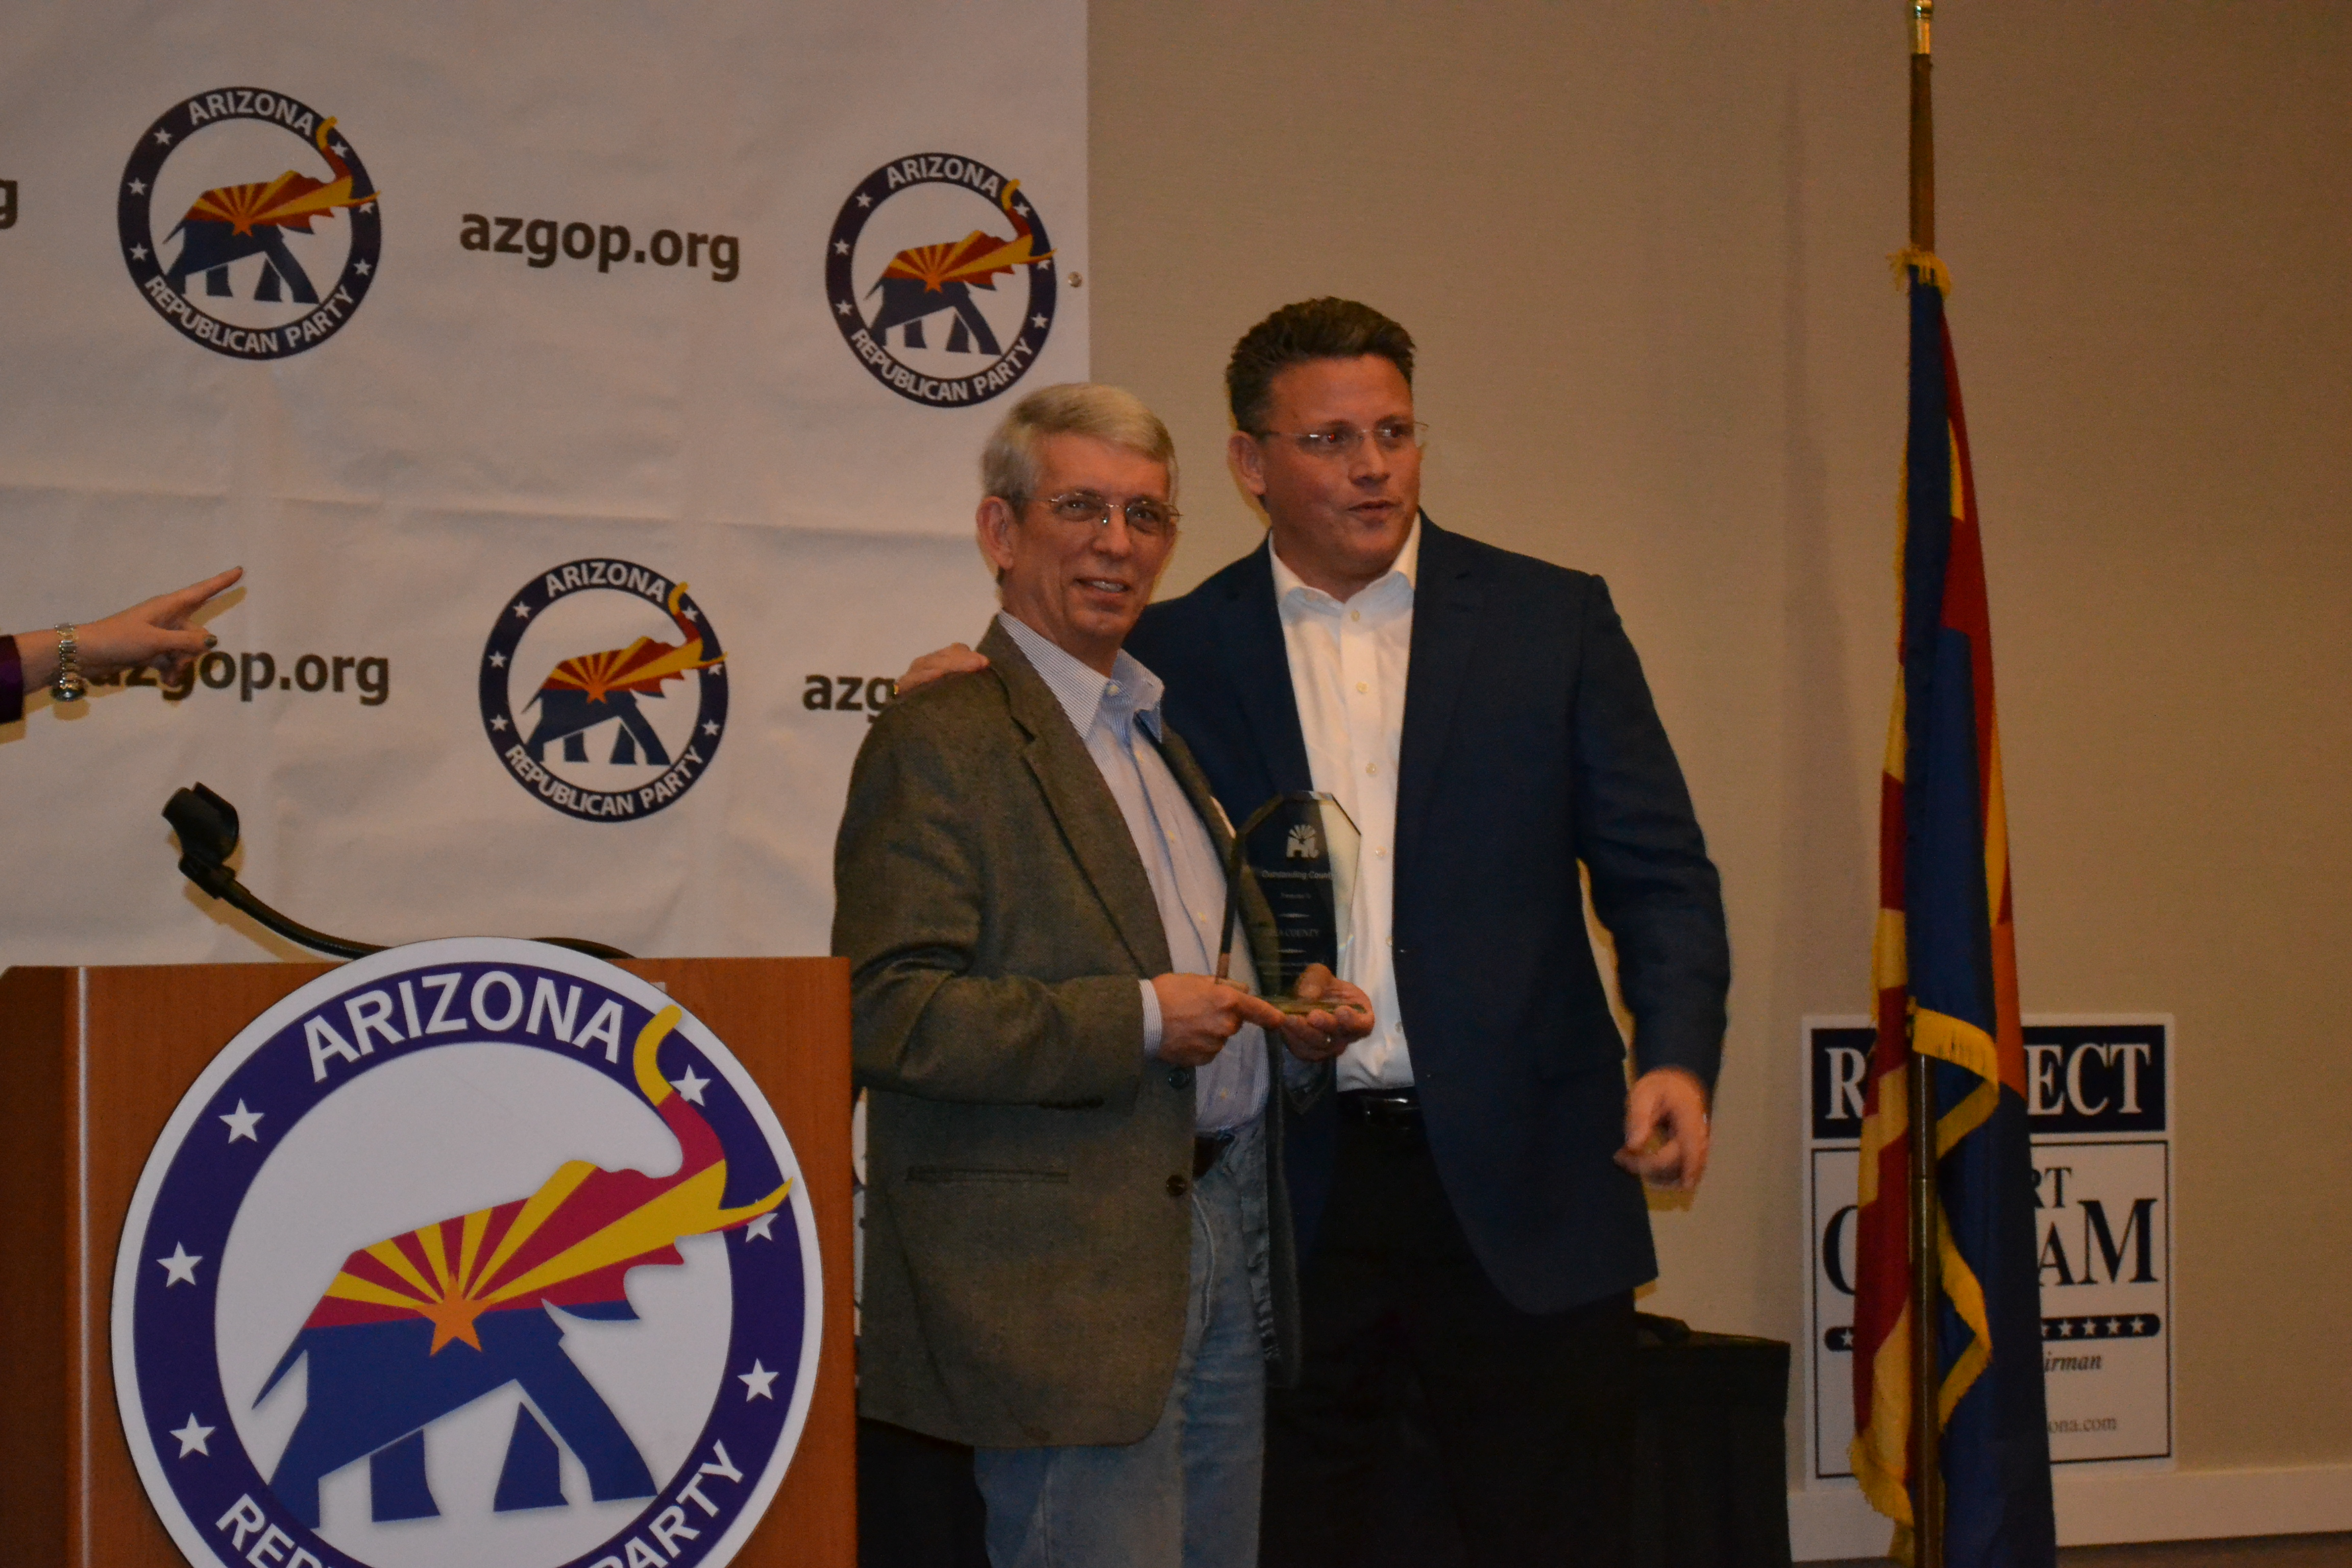 Arizona gila county pine - In Addition Our Own Lolly Hathhorn 1st Vice Chairman Of Gila County Won The Prestigious Dodie London Award For Outstanding Service To The Arizona